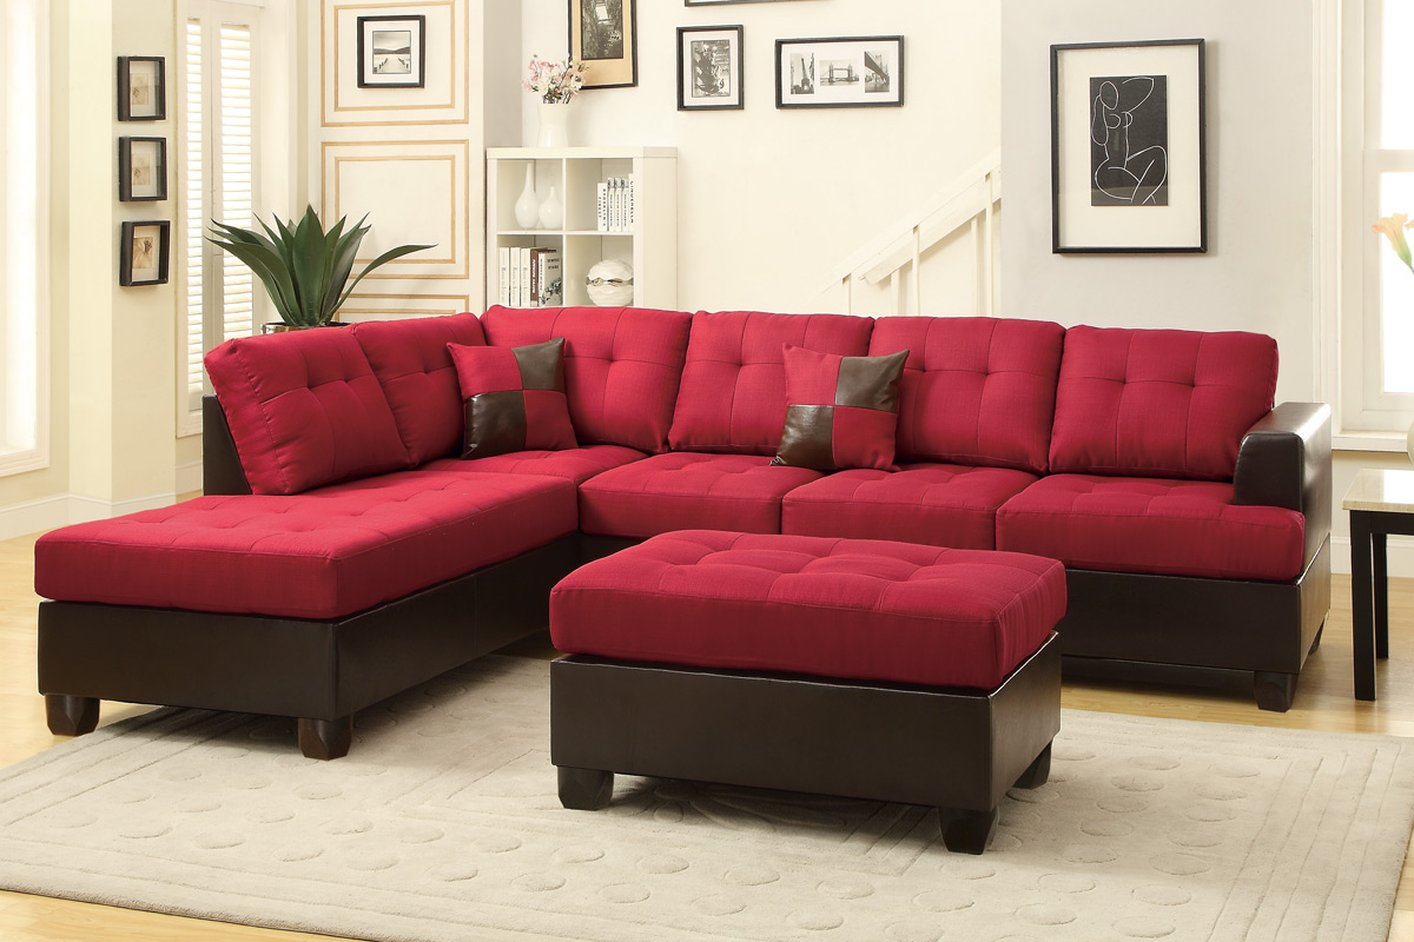 Poundex Moss F7601 Red Fabric Sectional Sofa And Ottoman